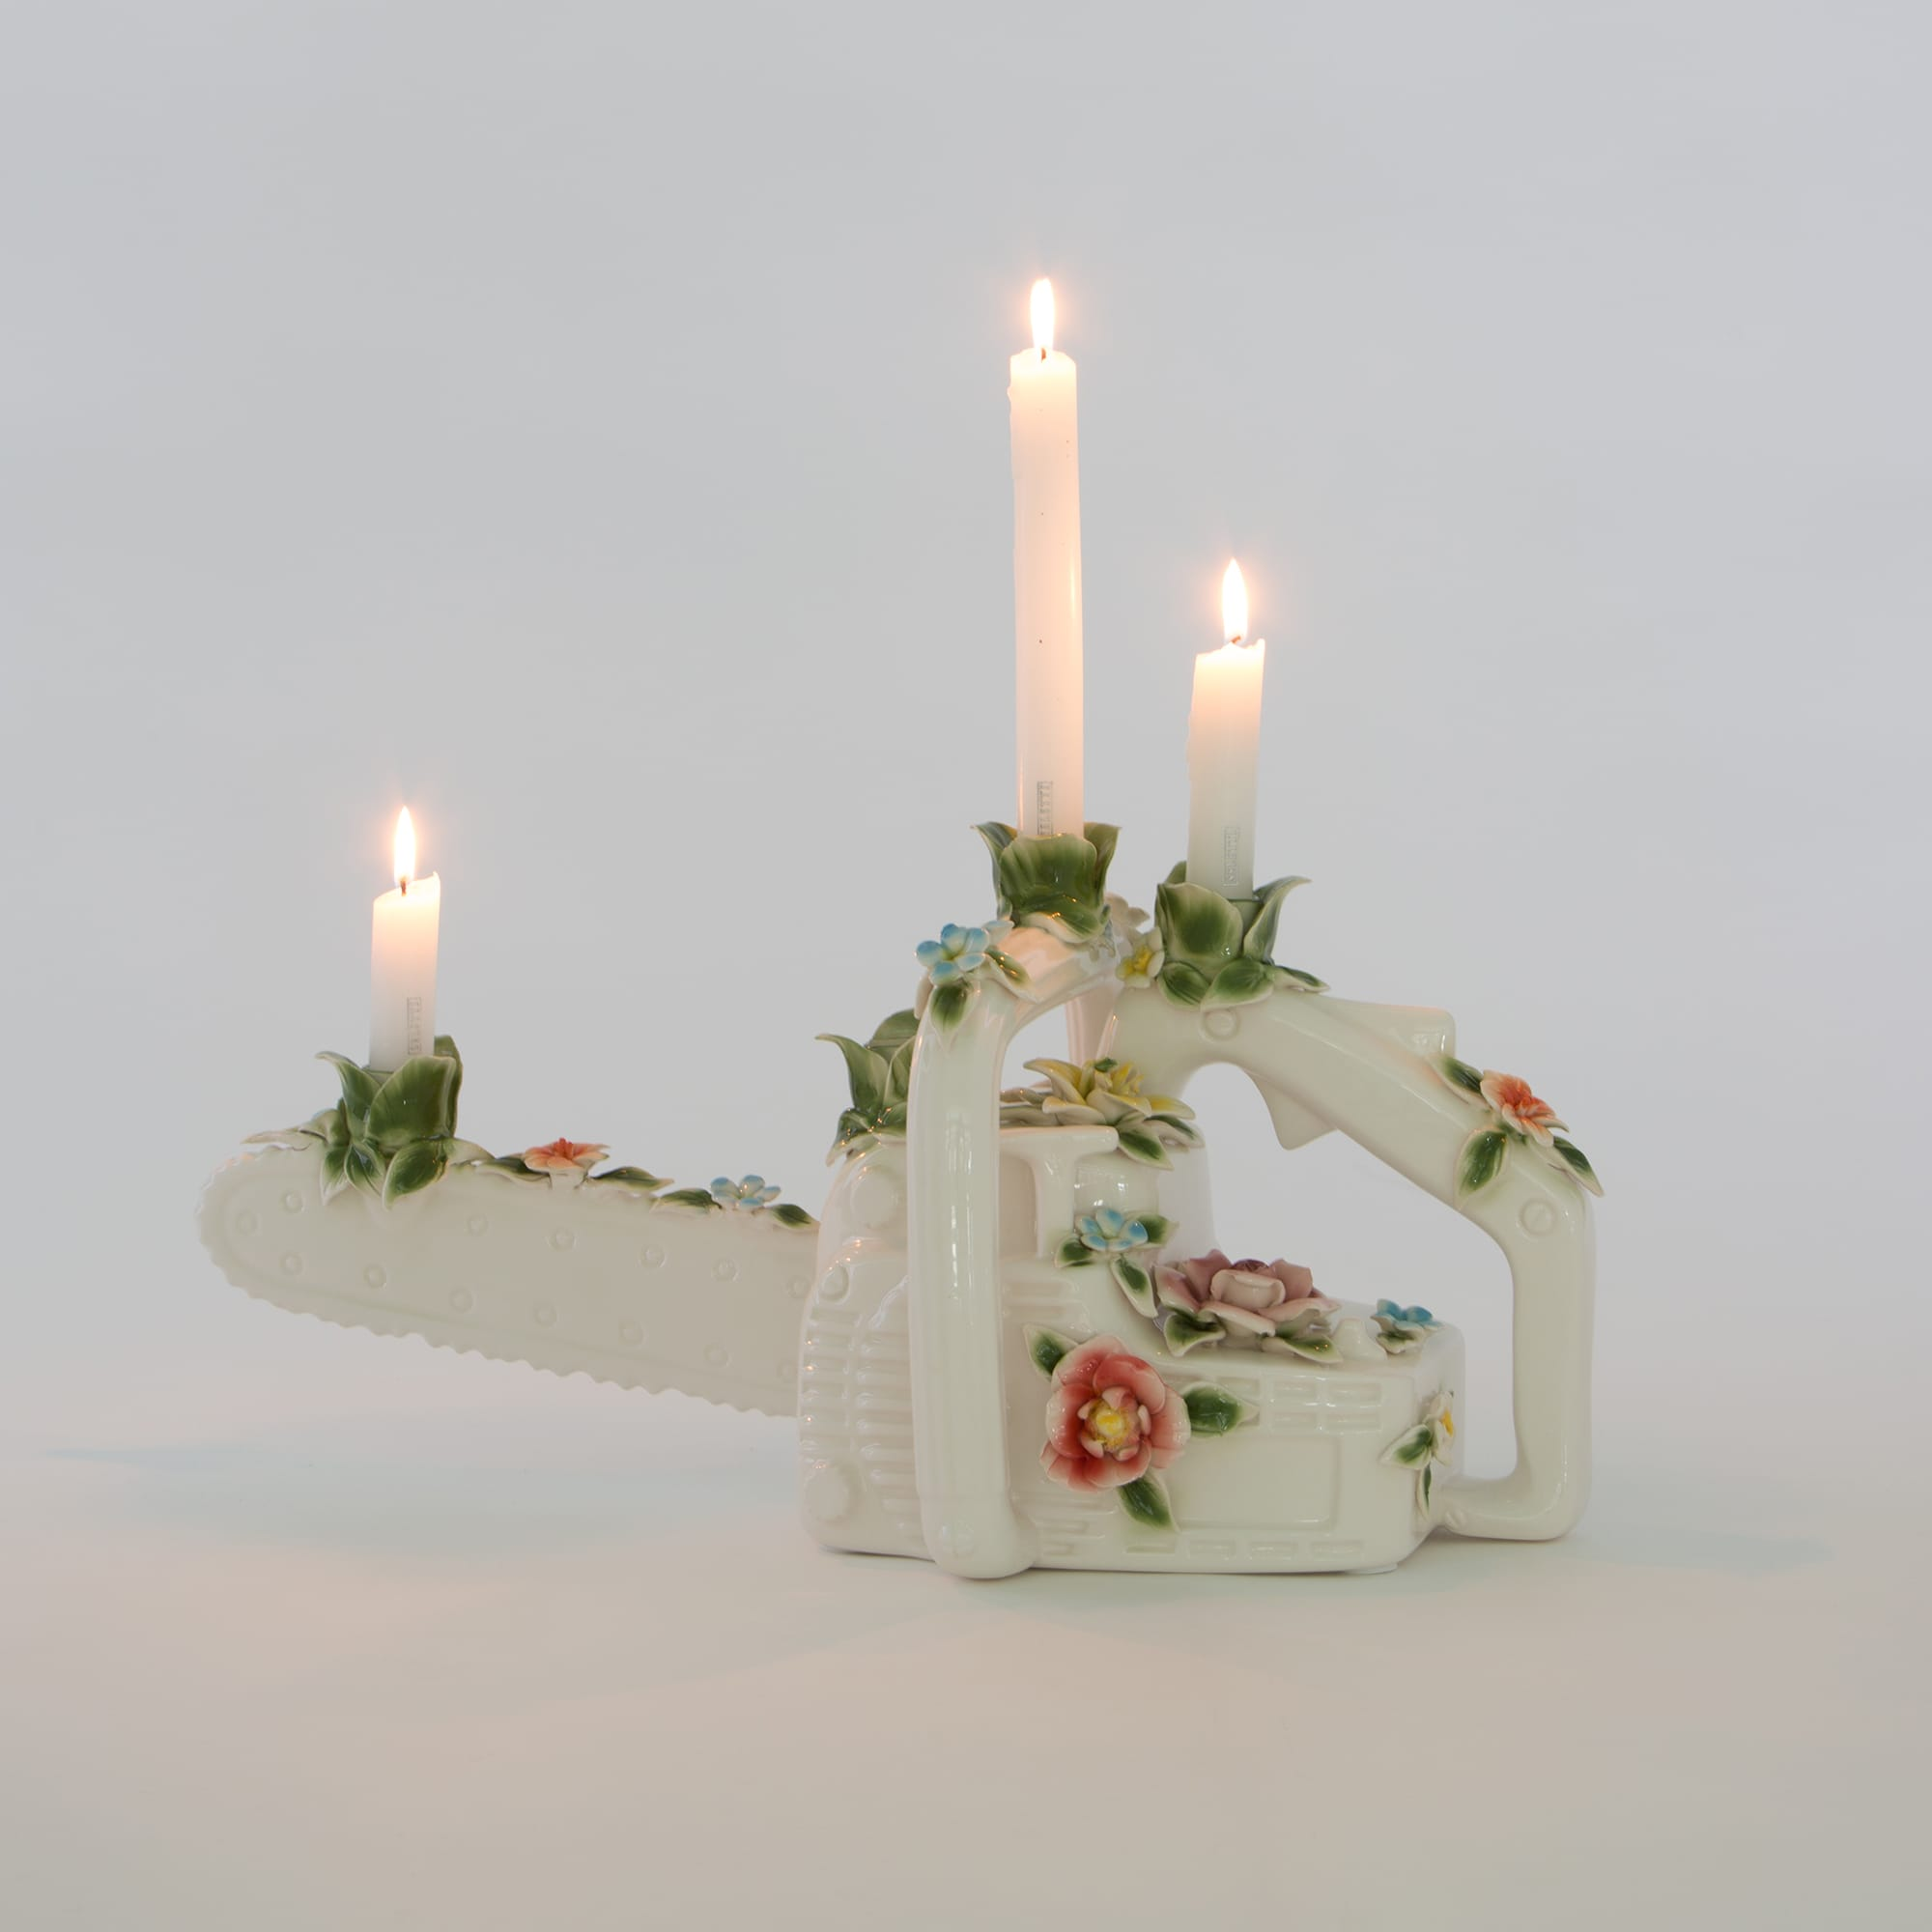 Candle Holder Seletti The Chainsaw Interior Design